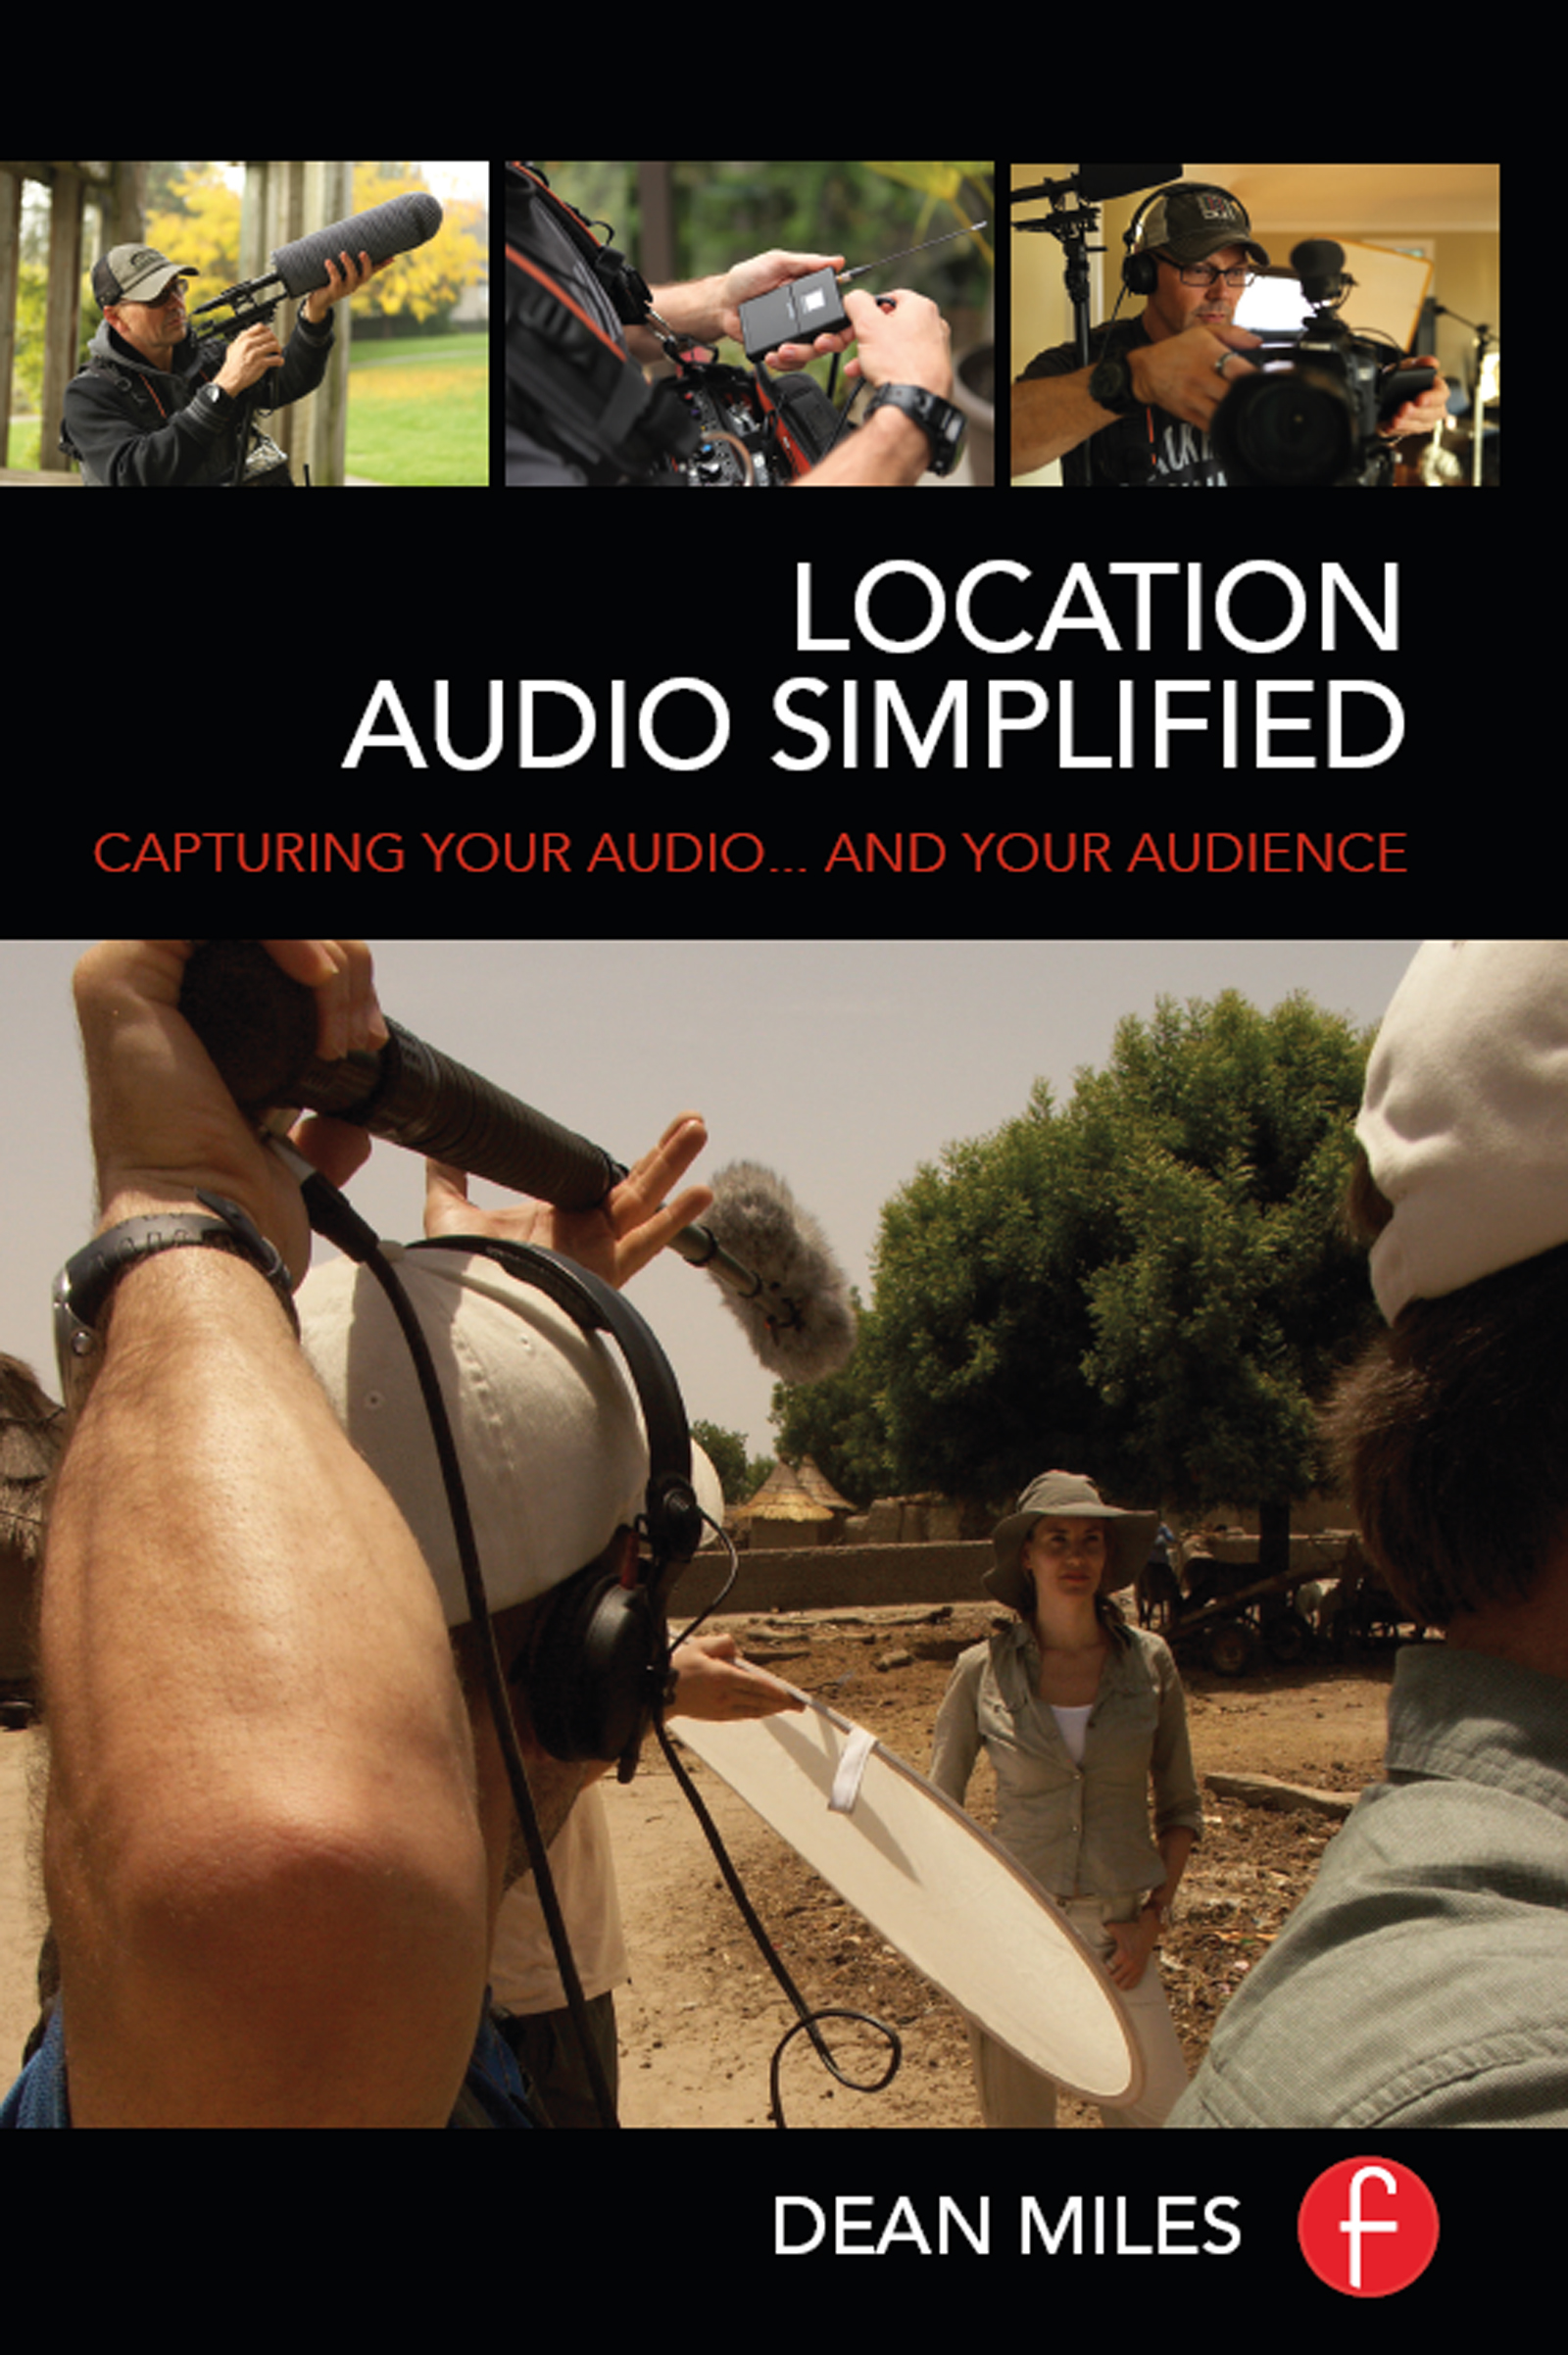 Location Audio Simplified: Capturing Your Audio... and Your Audience book cover